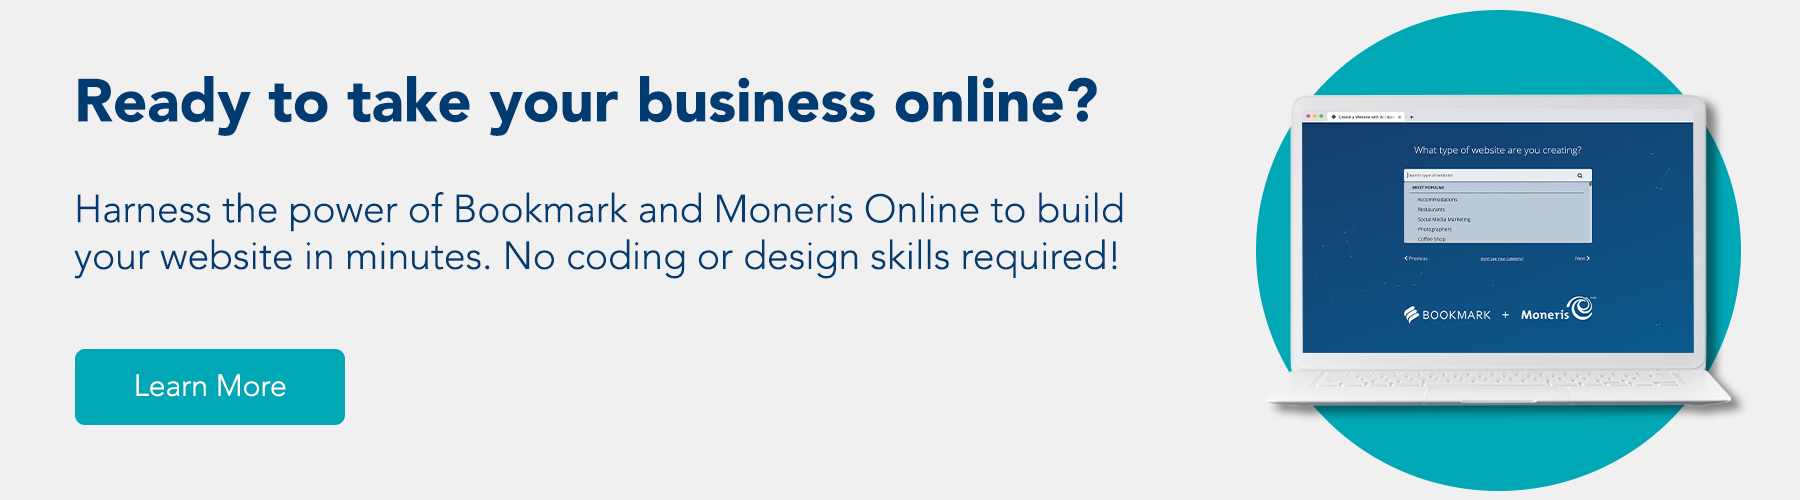 Ready to take your business online? Harness the power of Bookmark and Moneris Online to build your website in minutes. No coding or design skills required!